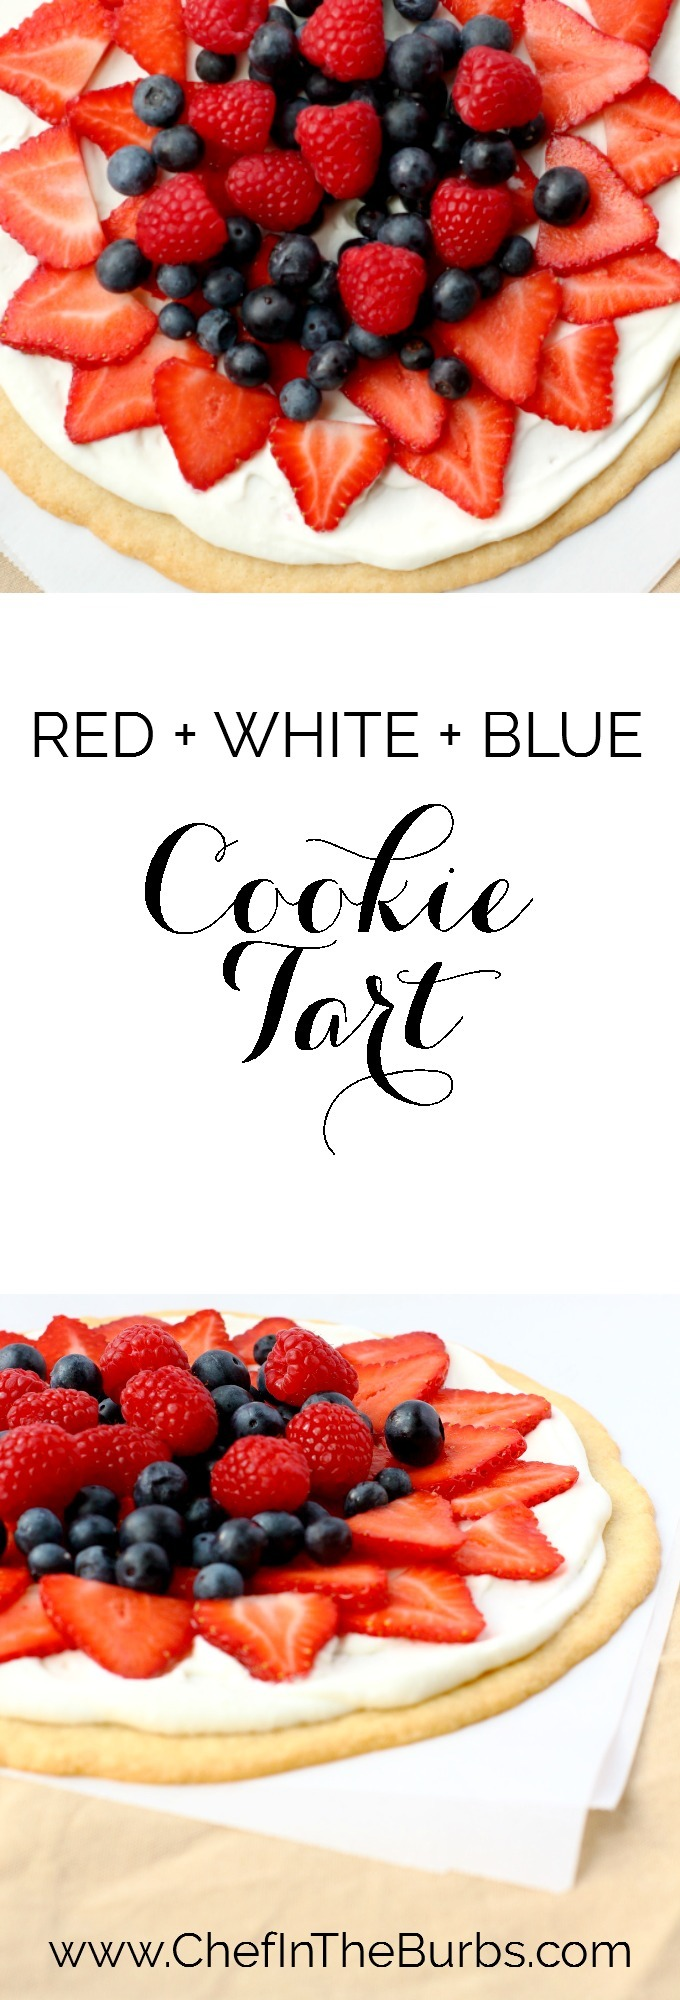 This RED + WHITE + BLUE : Berry Tart is a super fast and delish summer dessert that adults and kids love.